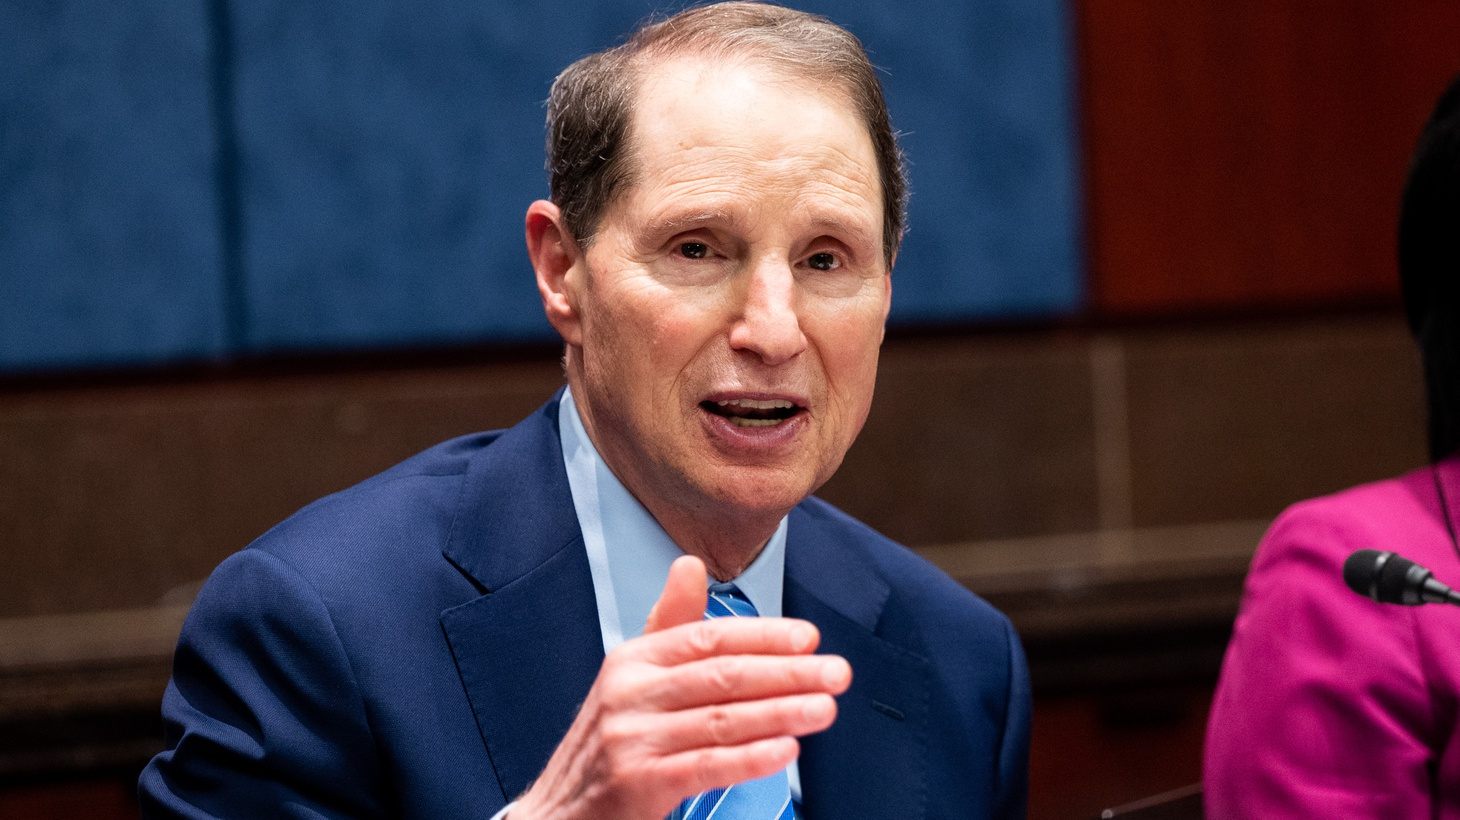 June 23, 2021 - Washington, DC, United States: U.S. Senator Ron Wyden (D-OR) speaking at a Senate Climate Change Taskforce discussion about a proposal to create a Civilian Climate Corps.